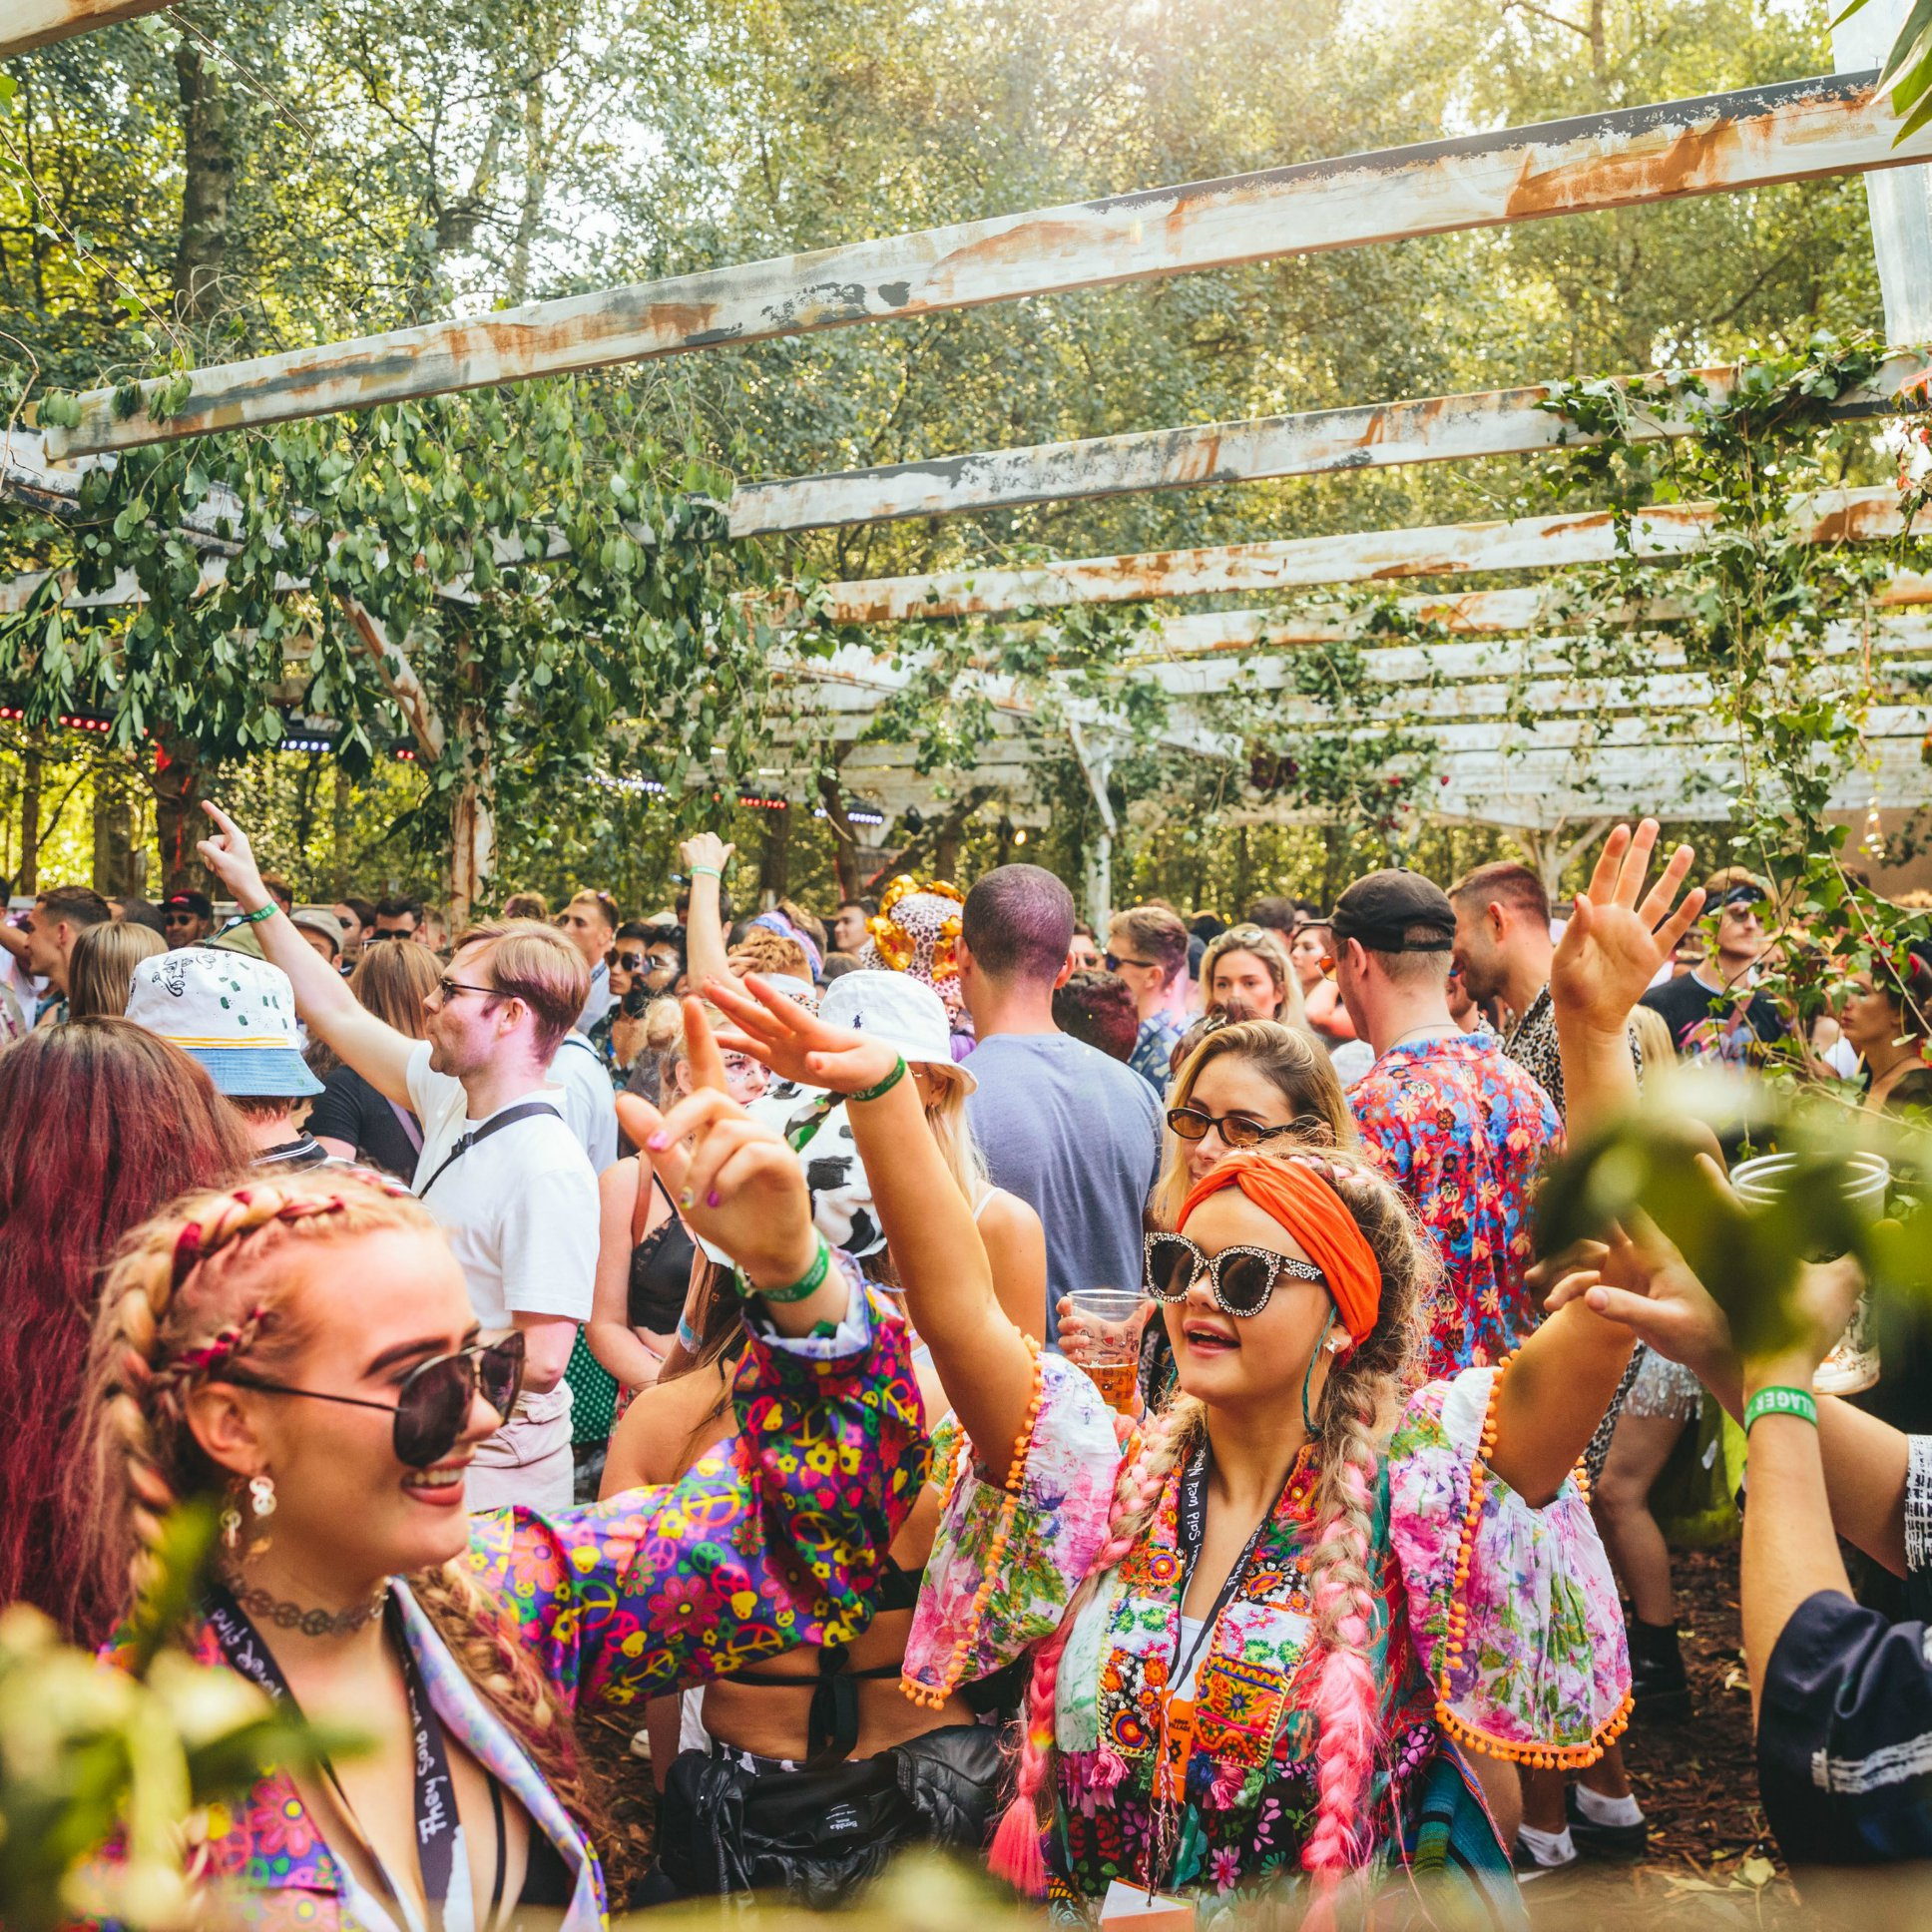 Lost Village news from @lostvillagefest: Watcher's Holt… Where secrets are told and rumours unfold. Thanks to Peggy Gou,